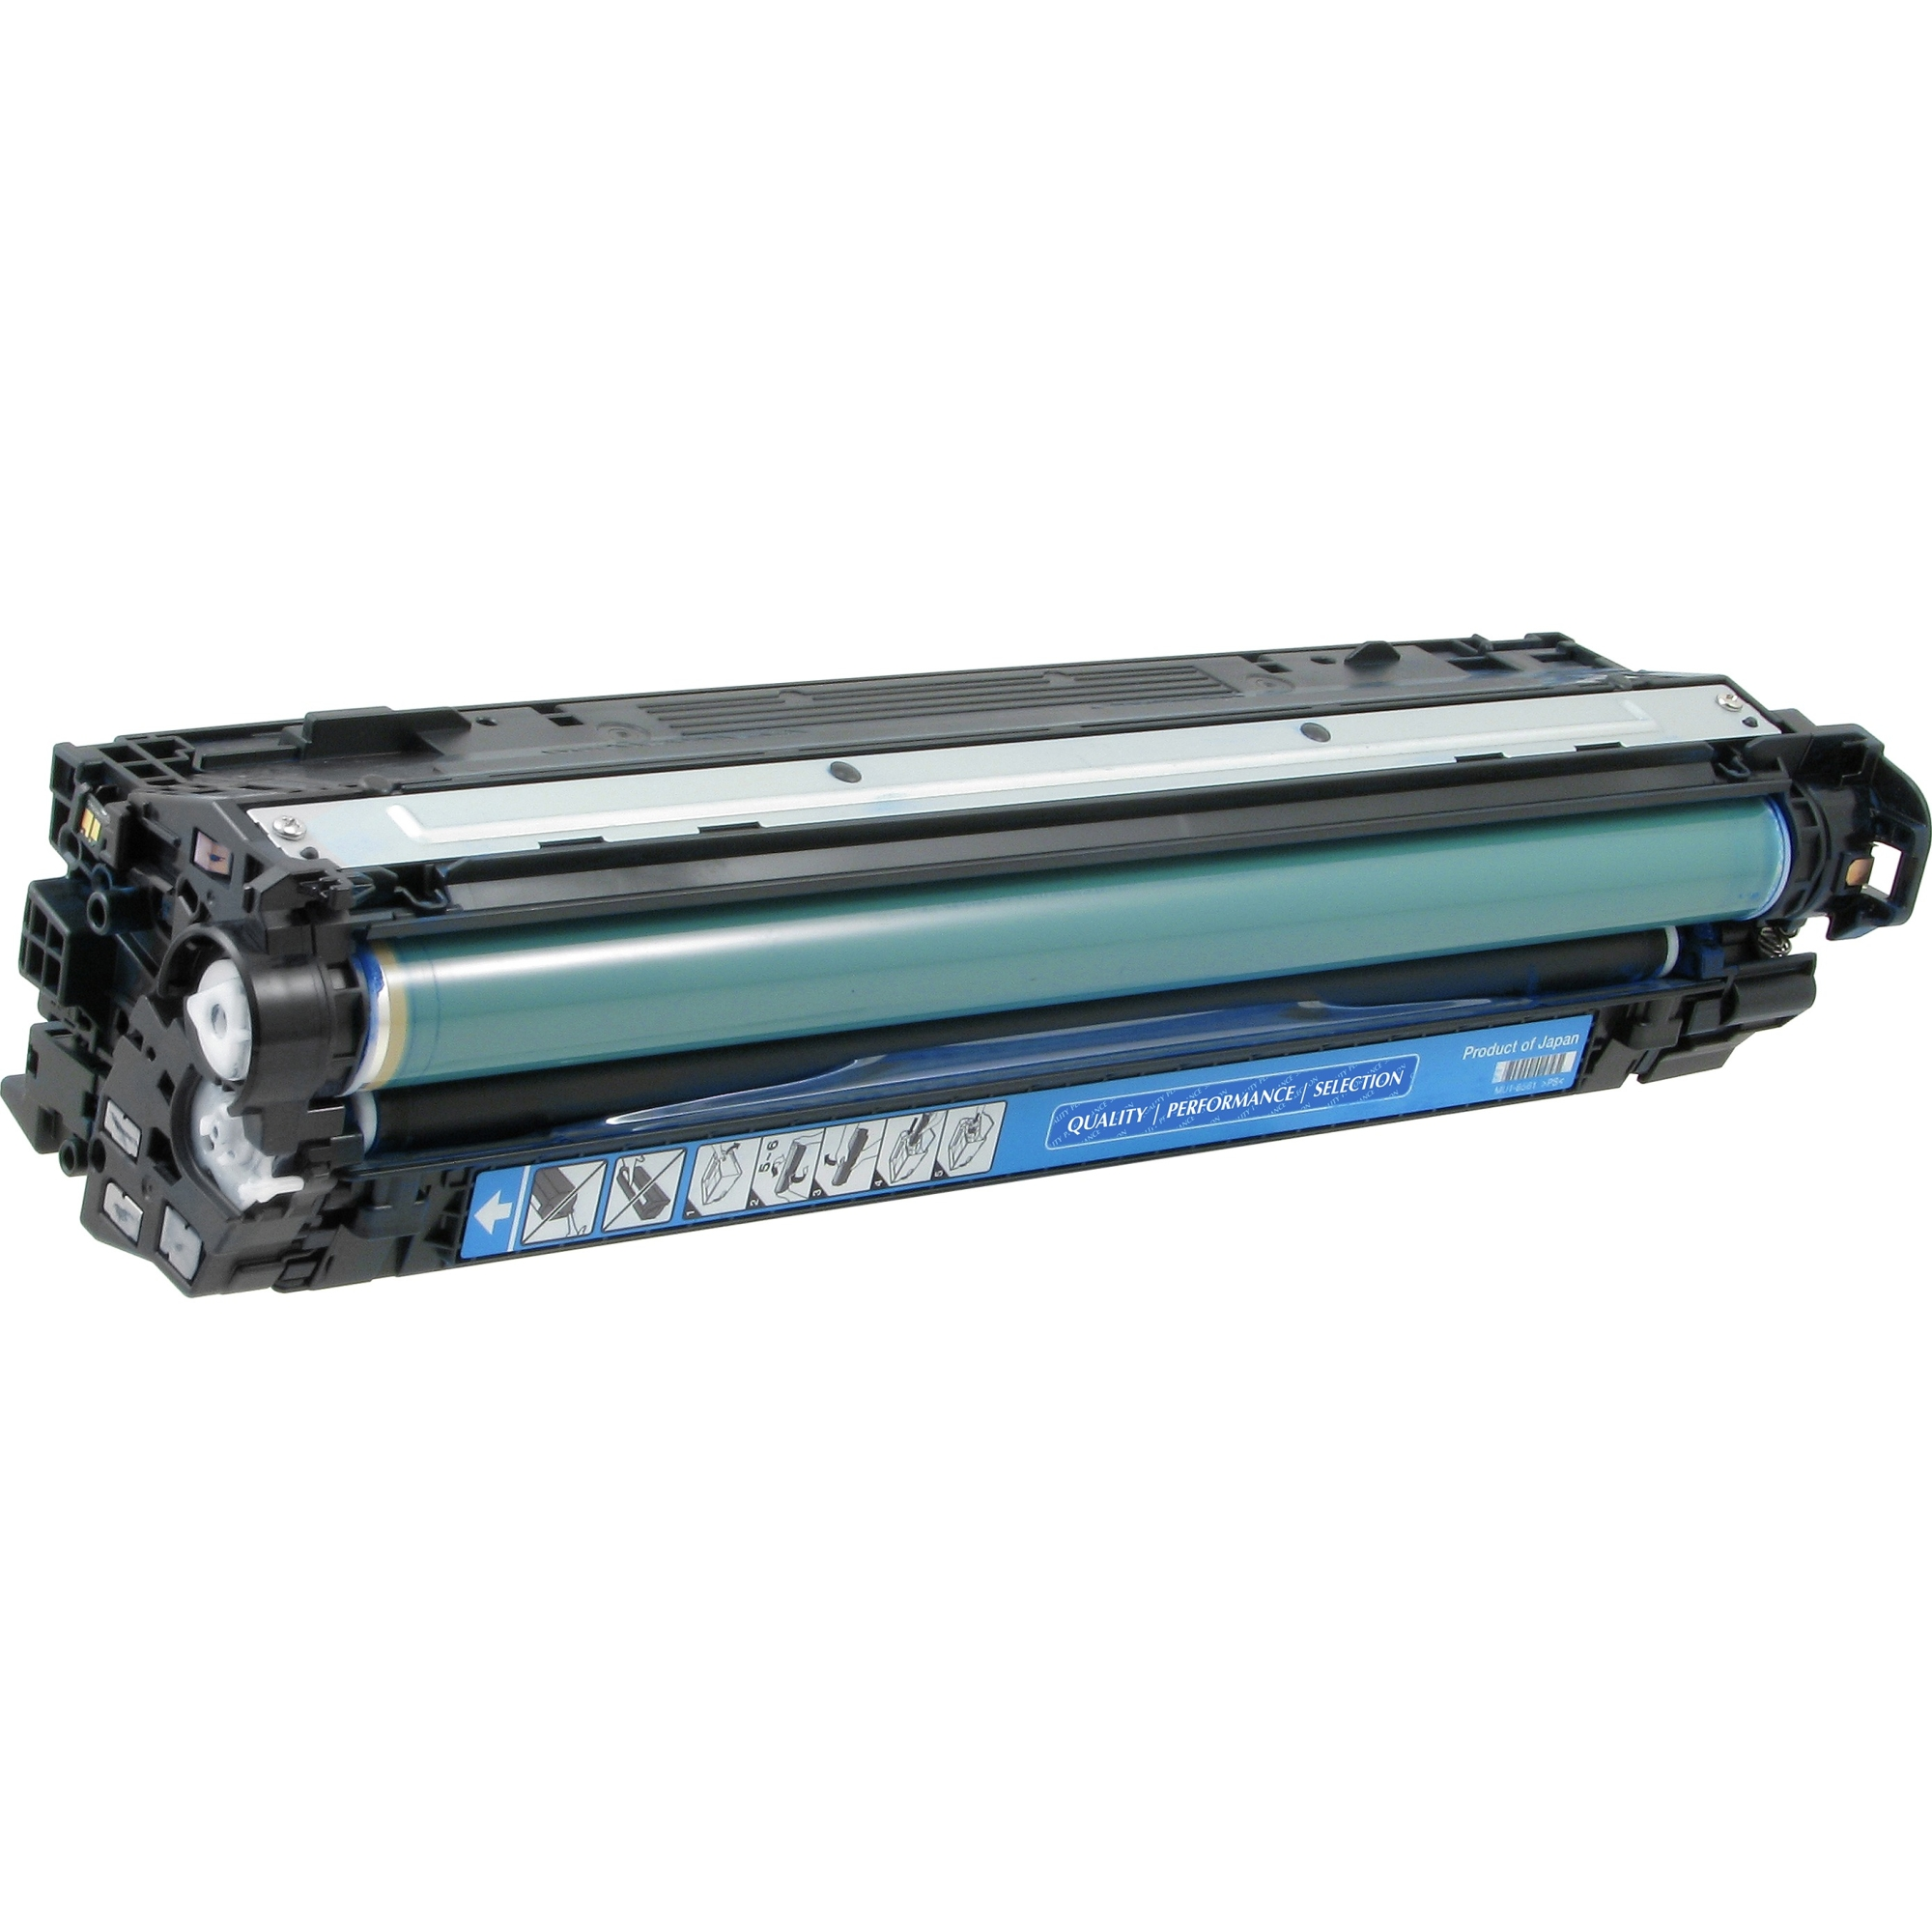 Toner Cartridge - Replacement for HP (CE741A) - Cyan - Laser - 7300 Page